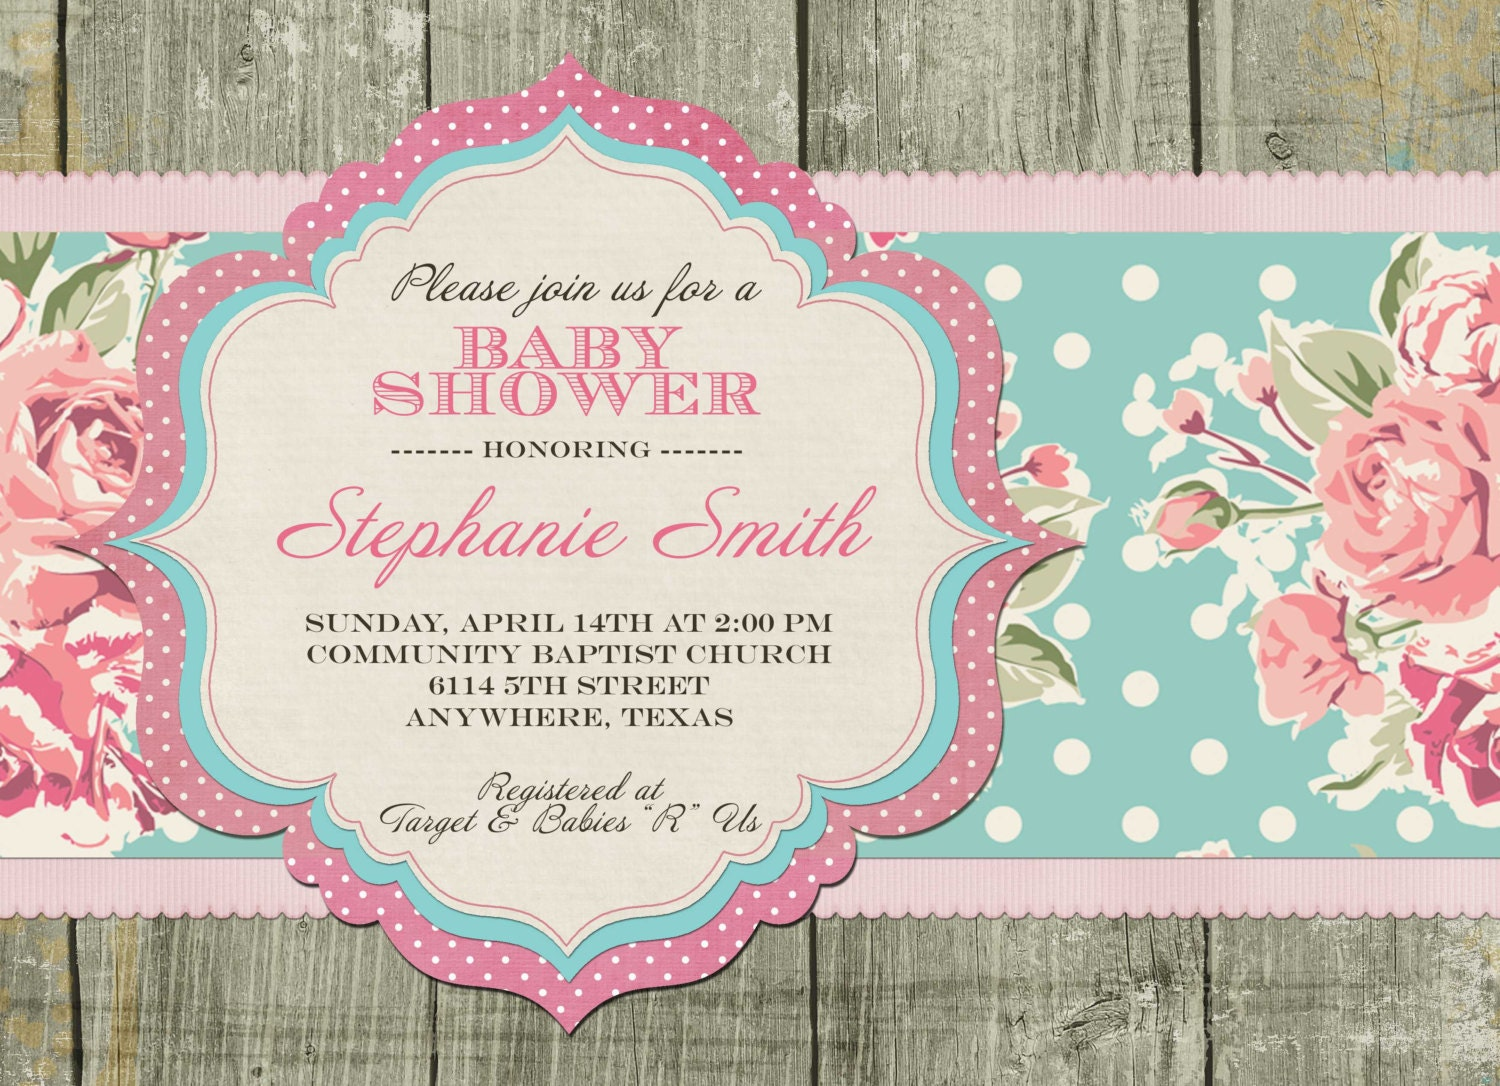 Vintage Alice In Wonderland Baby Shower Invitations is great invitations template